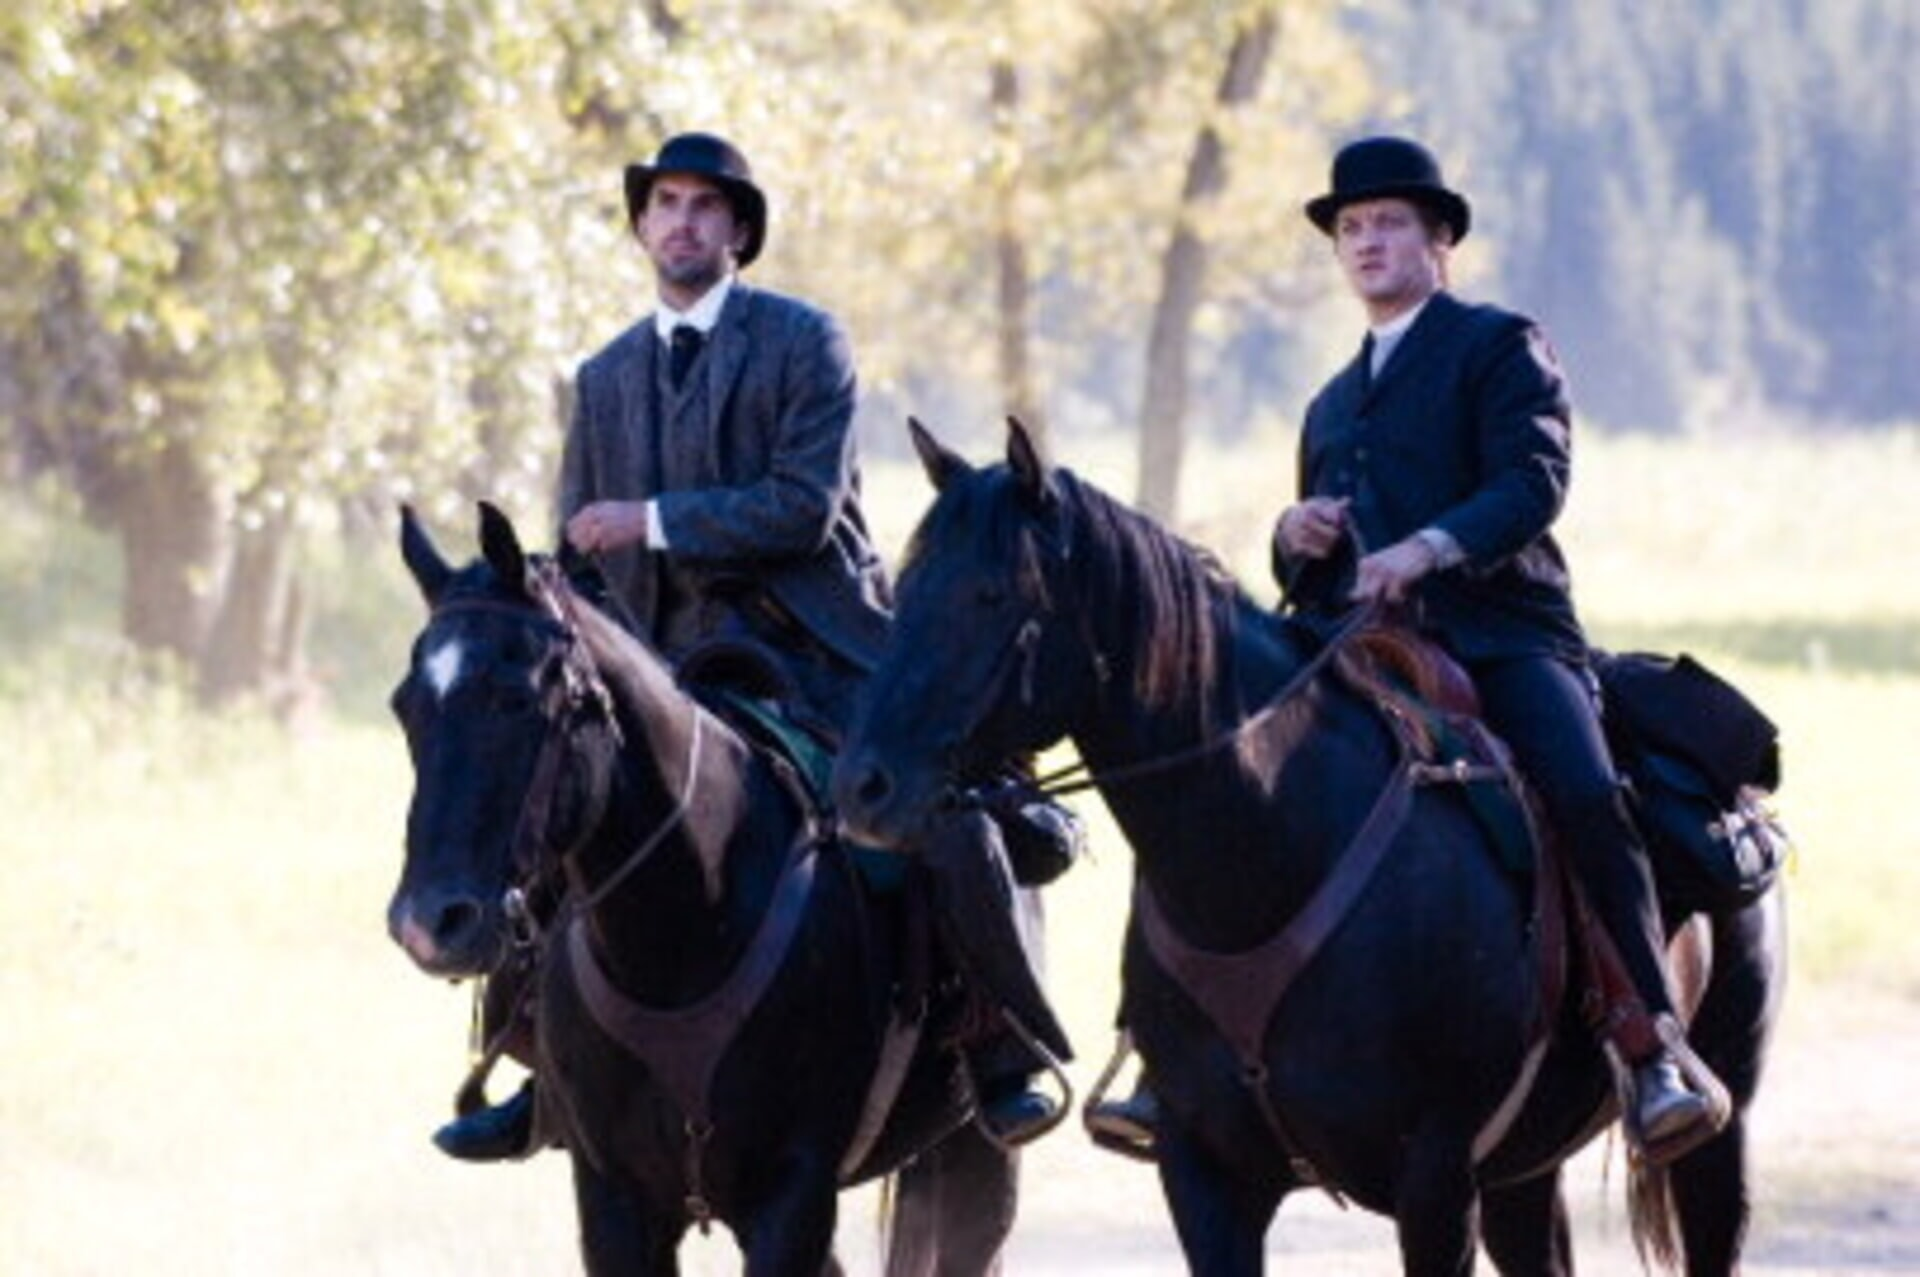 The Assassination of Jesse James by the Coward Robert Ford - Image 32